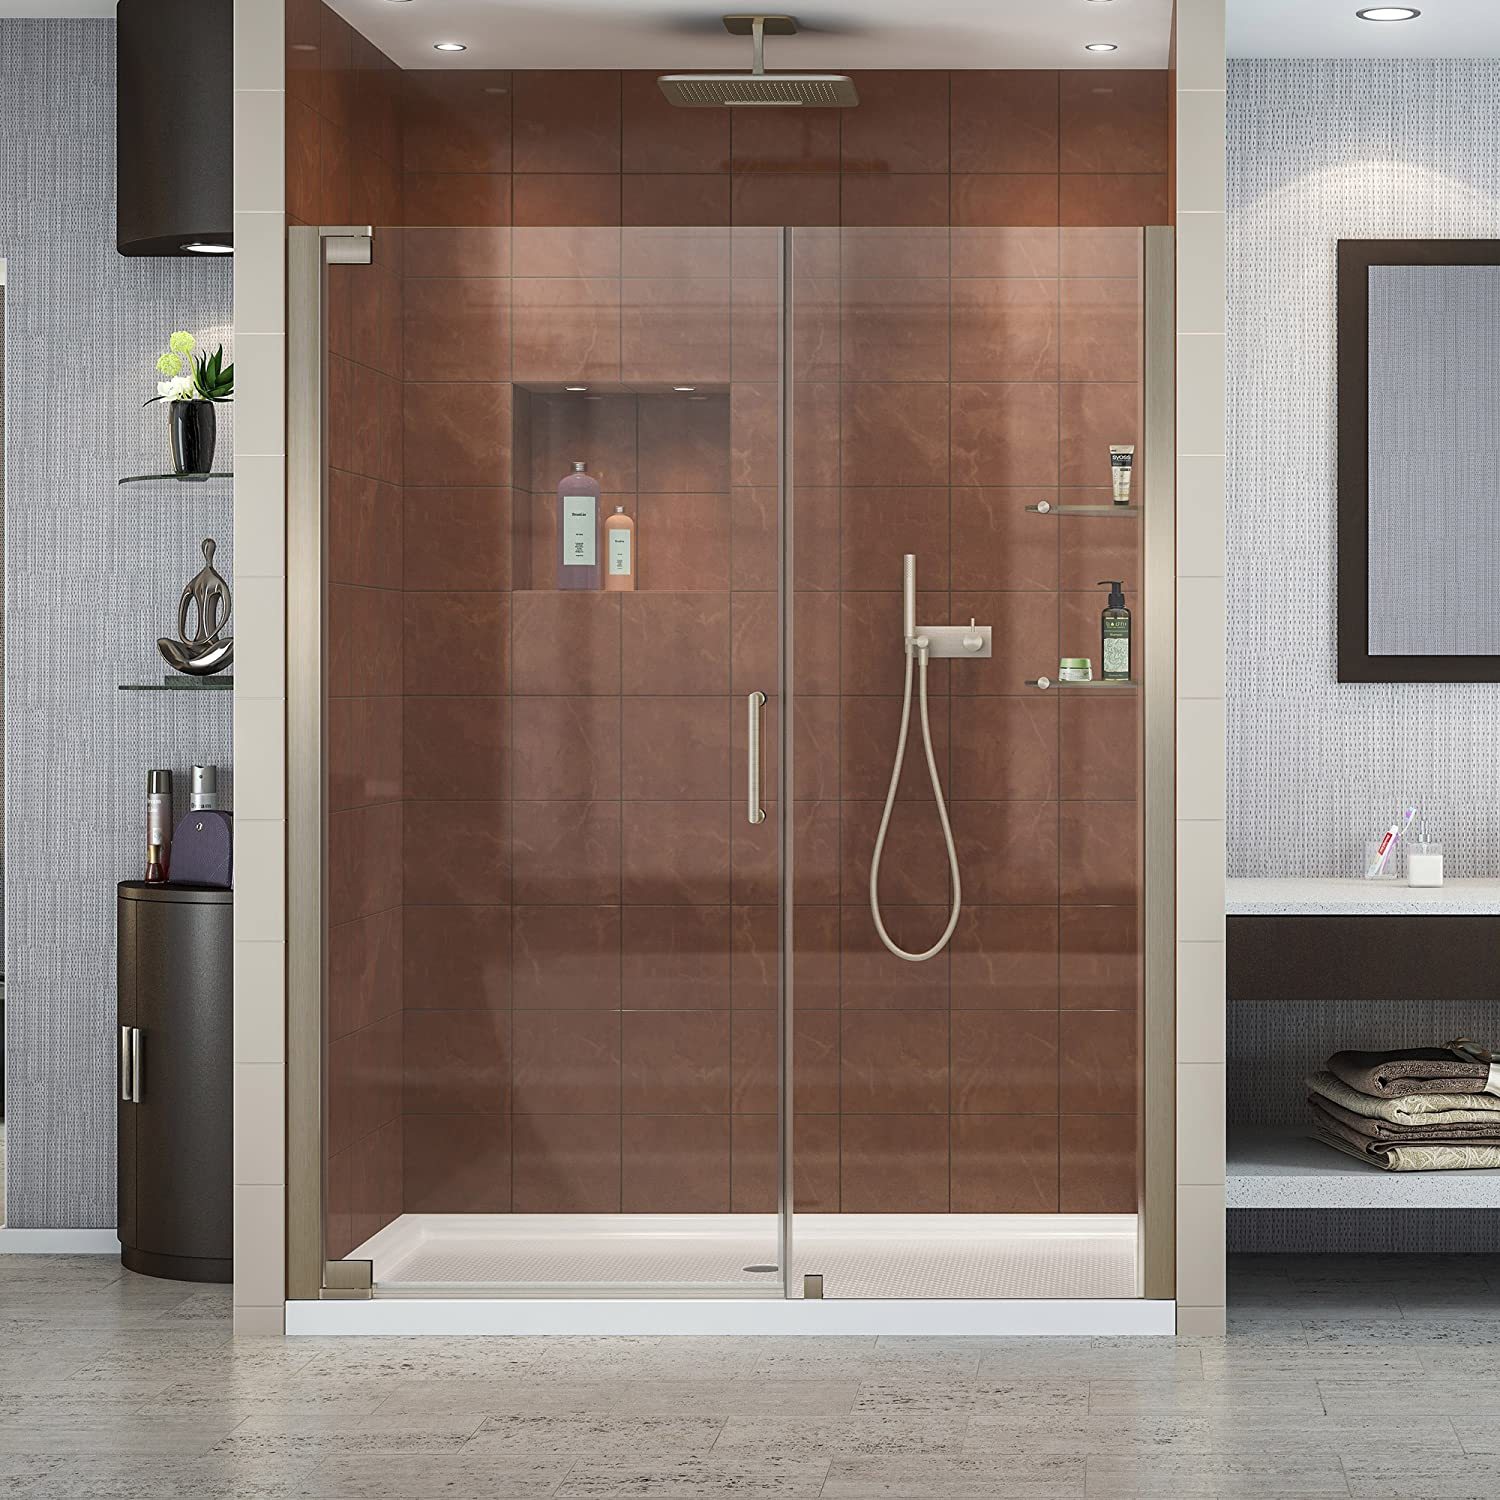 DreamLine Elegance 56 1 4 – 58 1 4 in. W x 72 in. H Frameless Pivot Shower Door in Brushed Nickel, SHDR-4156720-04